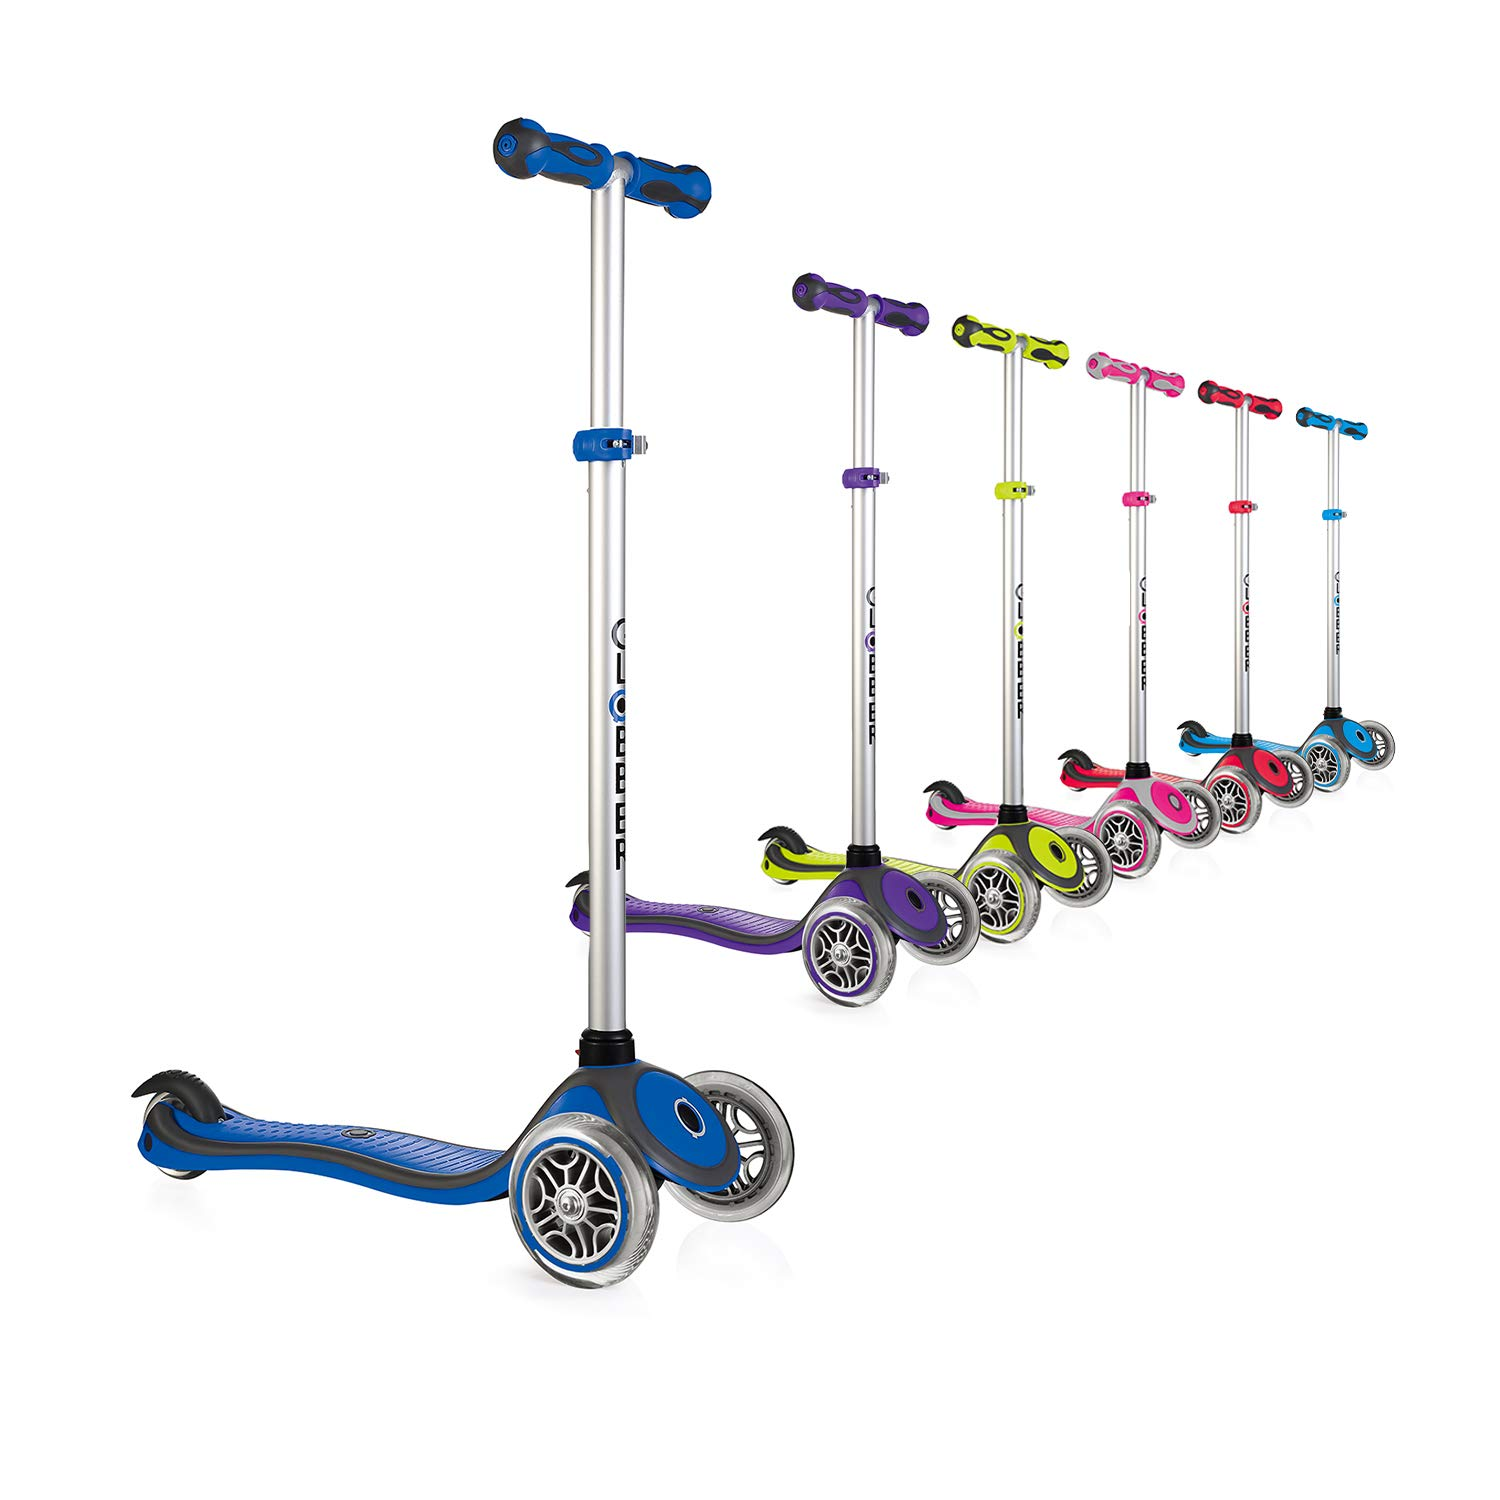 Globber 3 Wheel Adjustable Height Scooter (Blue/Gray) by Globber